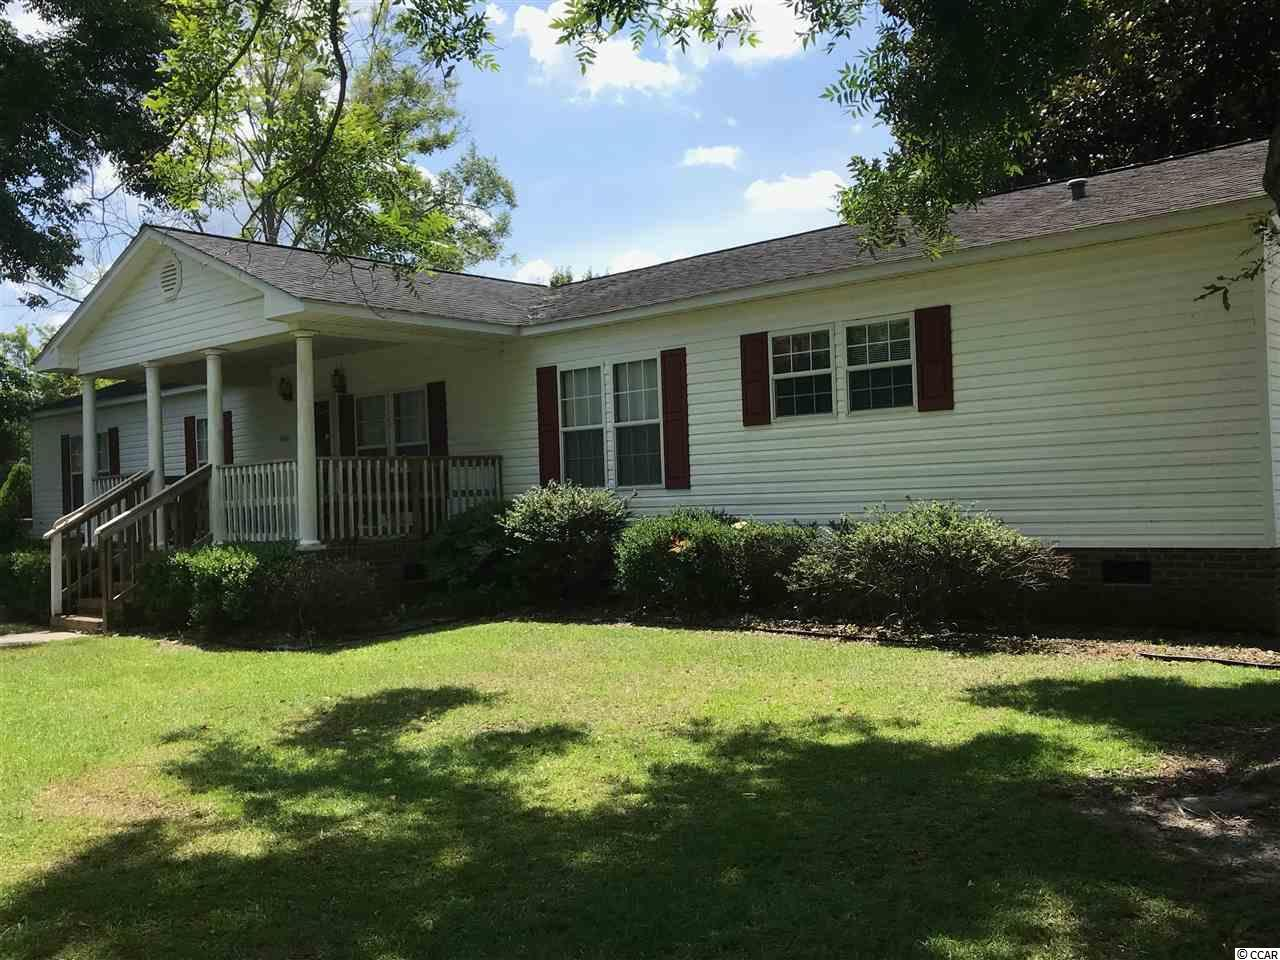 Wow! This is a MUST SEE! You will love this property nestled in the historic town of Conway,SC. Talk about living in the country but only being 18 miles away from the beach! Situated on 5 1/2 acres, this home comes with 3 separate addresses .There is 800 sq. ft. combo garage and workshop with plenty of parking for friends and family. The entire property is fenced in and has 5 separate septic systems in which 3 are DECH approved along with county water and underground utilities. The main house sits on 1 acre that offers 3 bedrooms, 2 full baths and  a half bath. The living room which is off the main kitchen has a nice fireplace, and there is an office which could be used as a fourth bedroom. There is a studio kitchen with a 28 x 10 utility room which includes a washer and a dryer. All appliances stay. Imagine eating breakfast in your 20 x10 Carolina Room that also has a 26 x 10 screened in porch leading to a patio. There is also an old horse barn and tack house on the property that could also be restored with some TLC. I just can't say enough about this property! What are you waiting for? Call me today to set up a tour.